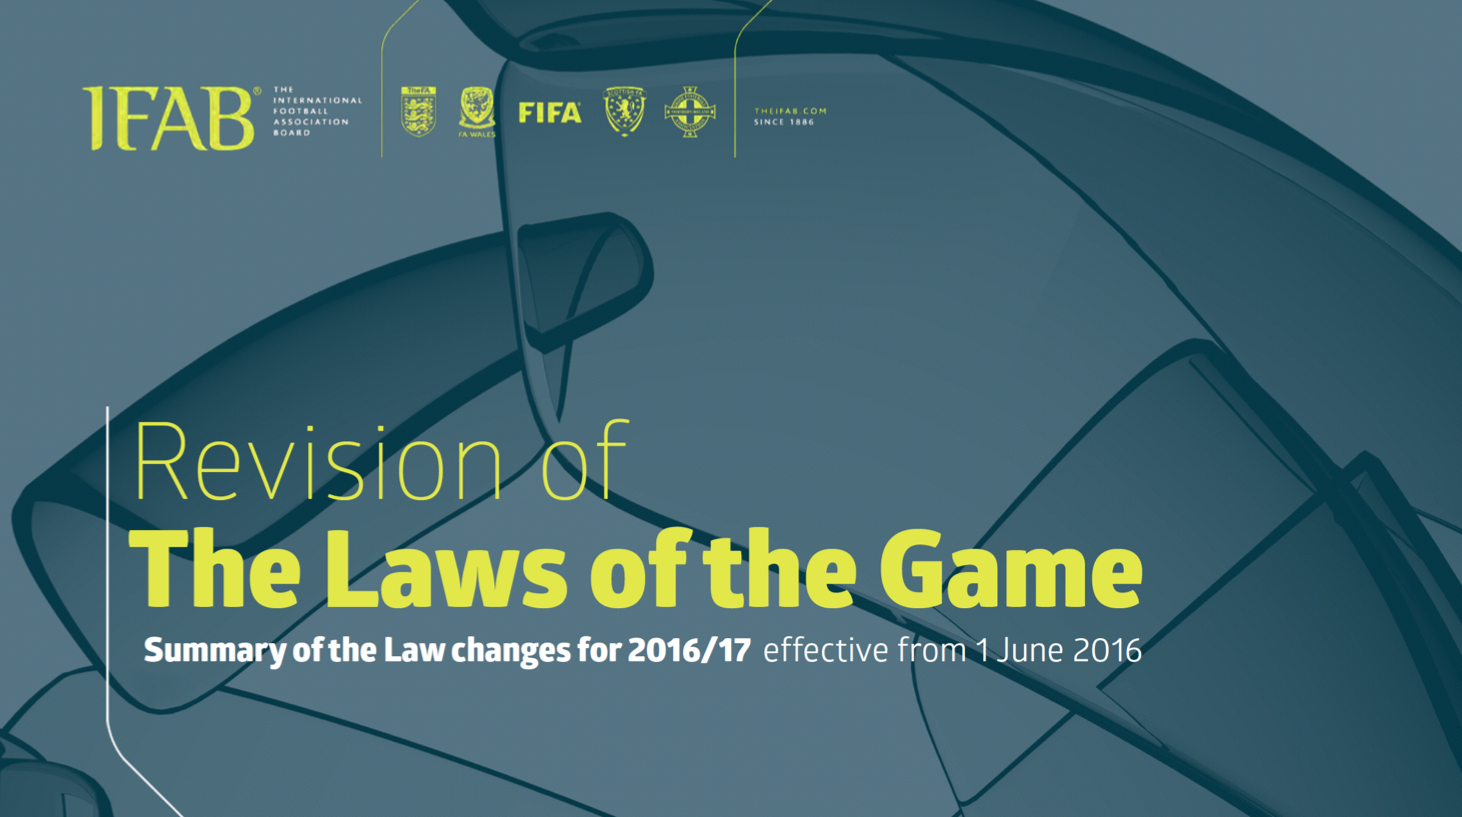 IFAB laws of the game changes 2016/2017